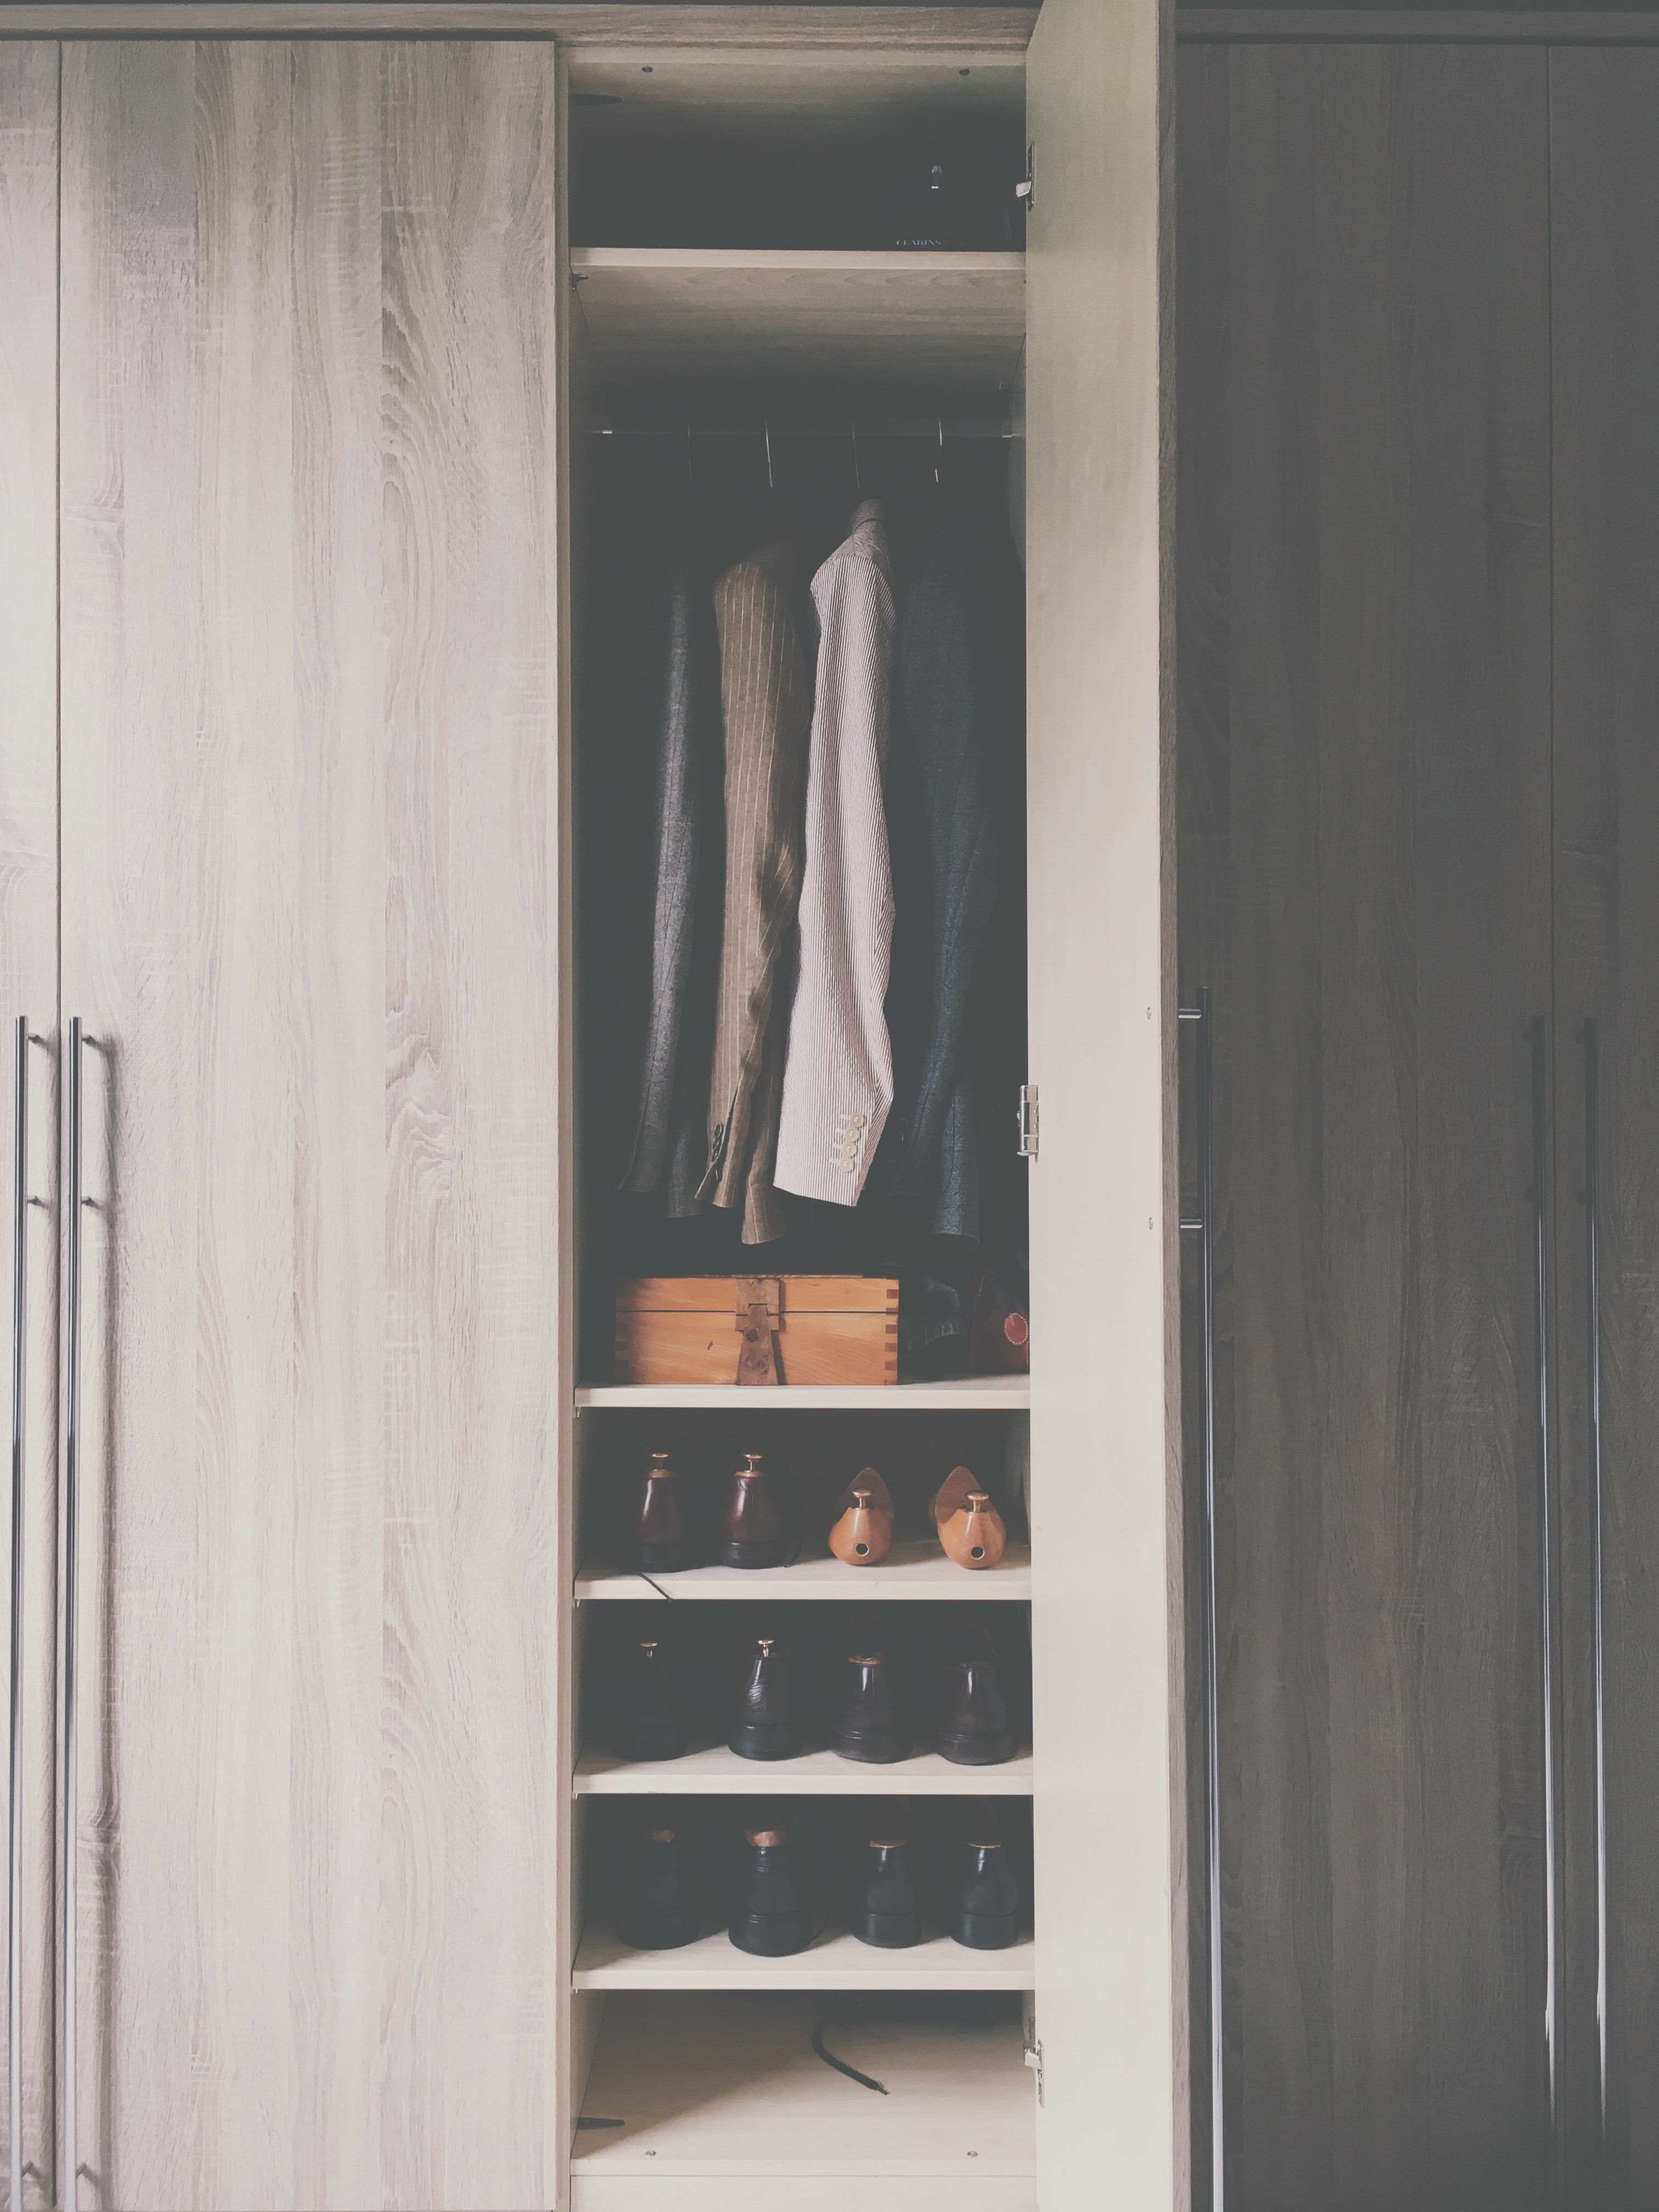 A monochromatic wooden closet with silver handles filled with shoes, a wooden box, and suit jackets in Wilmslow, England, United Kingdom